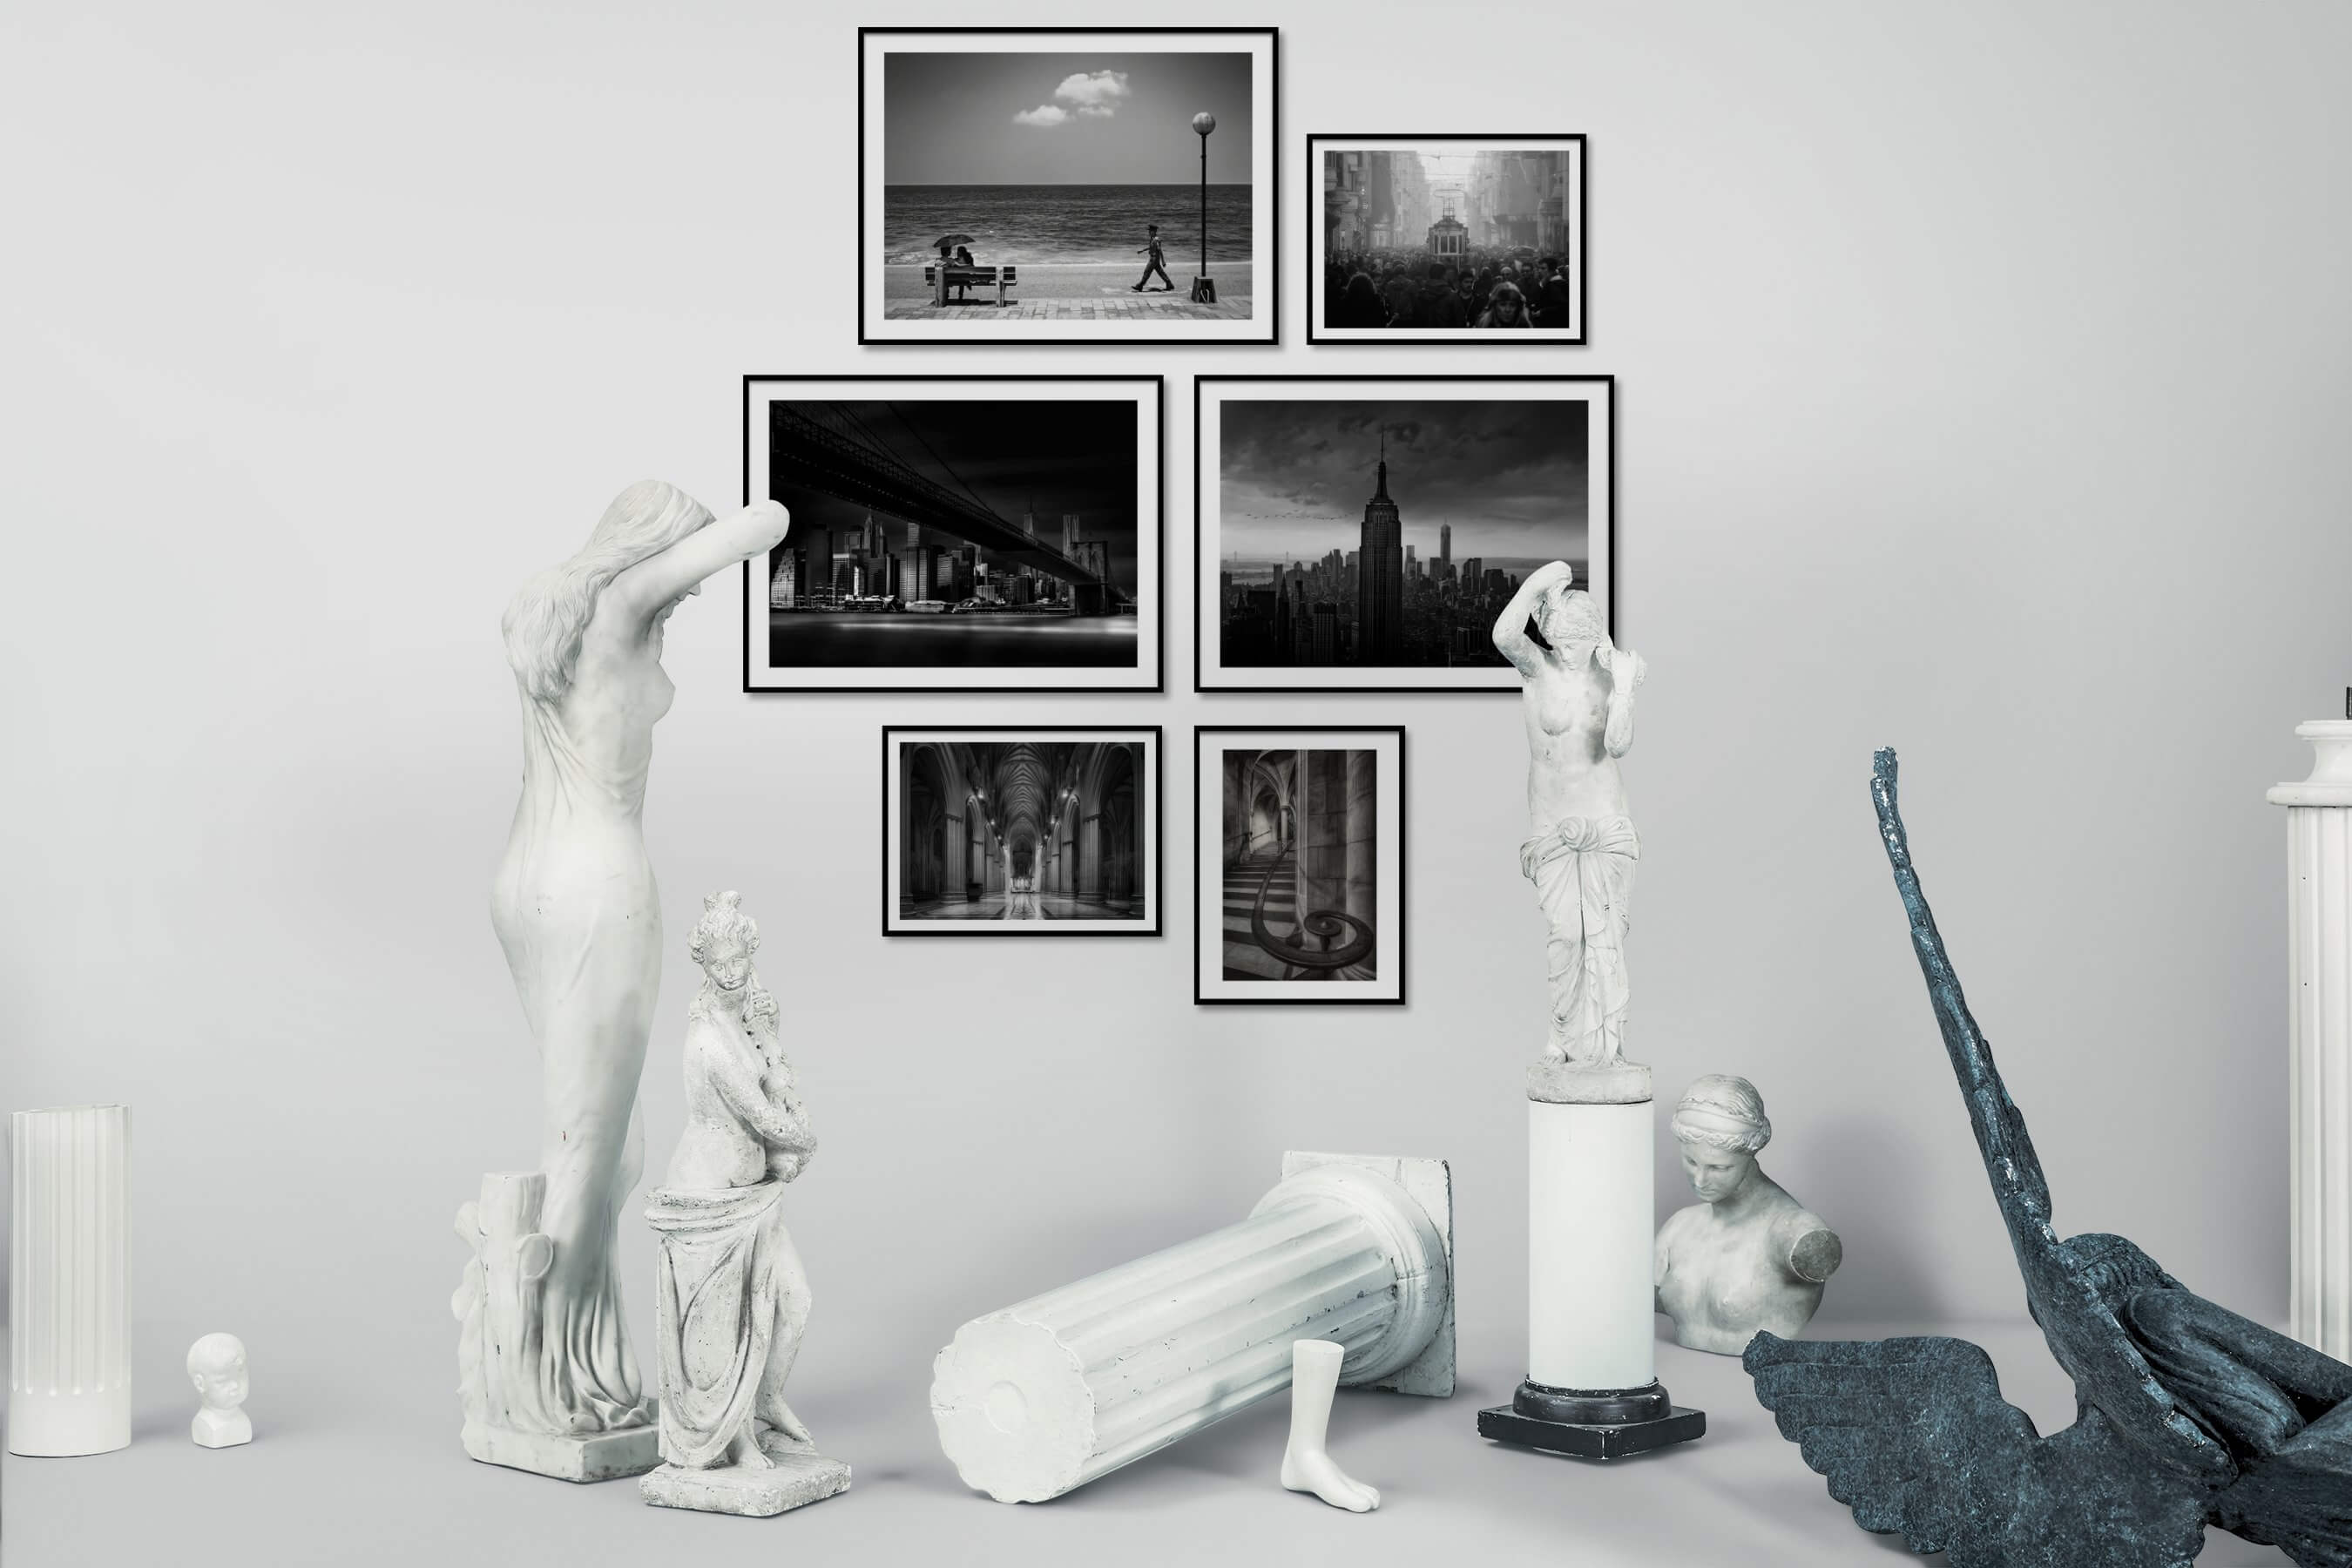 Gallery wall idea with six framed pictures arranged on a wall depicting Black & White, Beach & Water, City Life, Americana, For the Maximalist, and For the Moderate